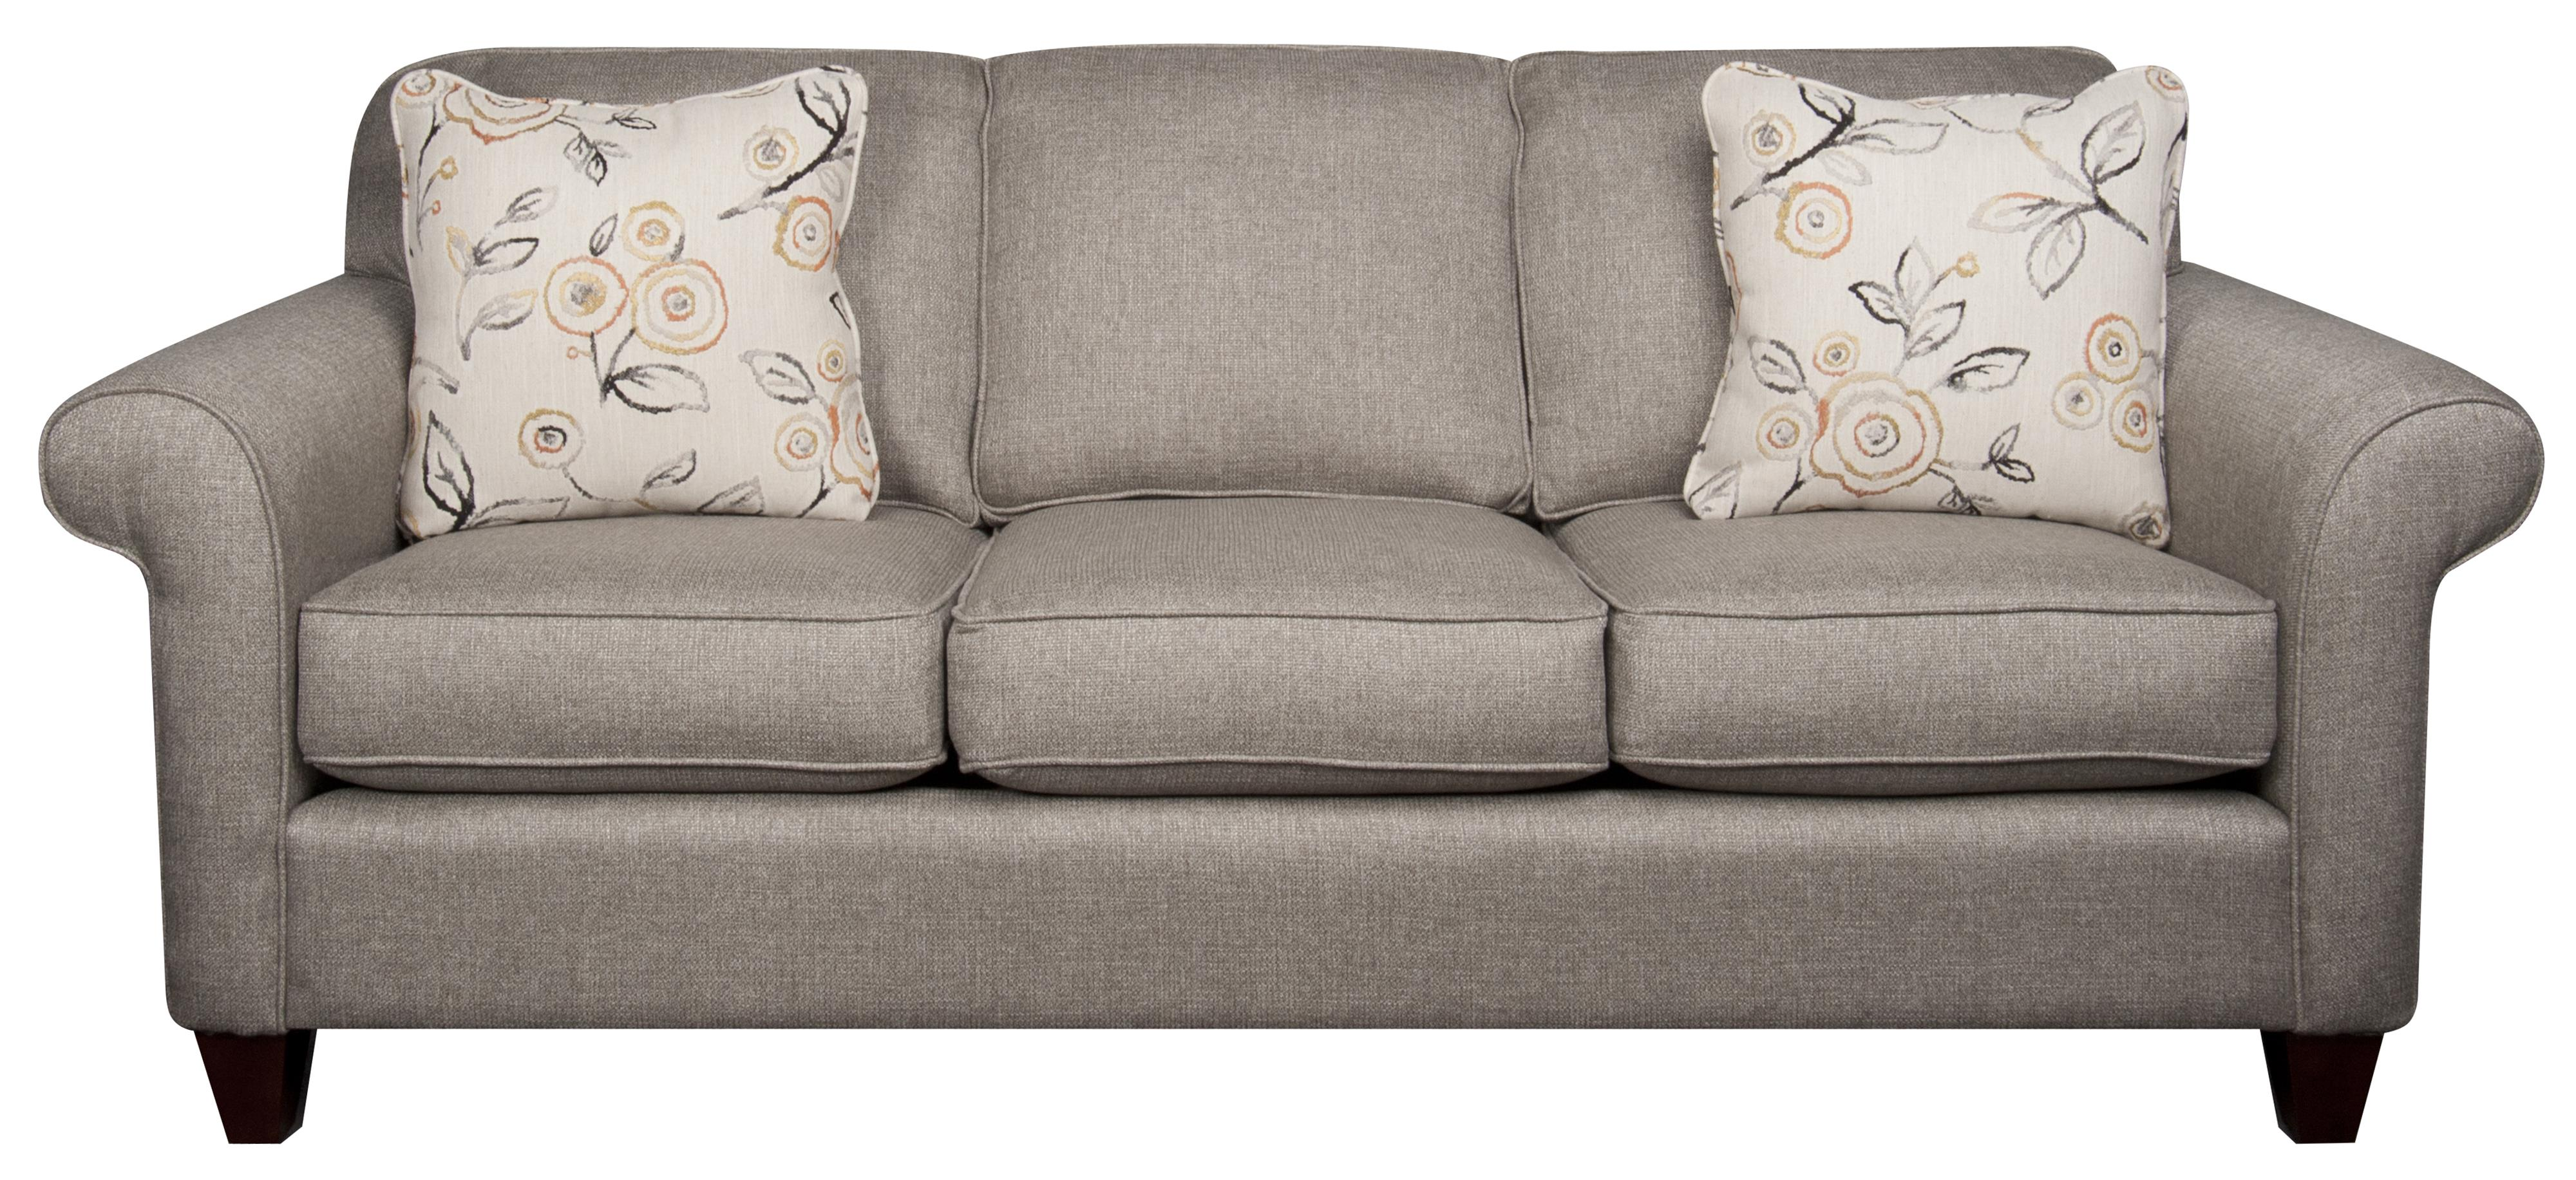 Sofa Fabric Sarah Revolution Fabric Sofa By Main Madison At Morris Home